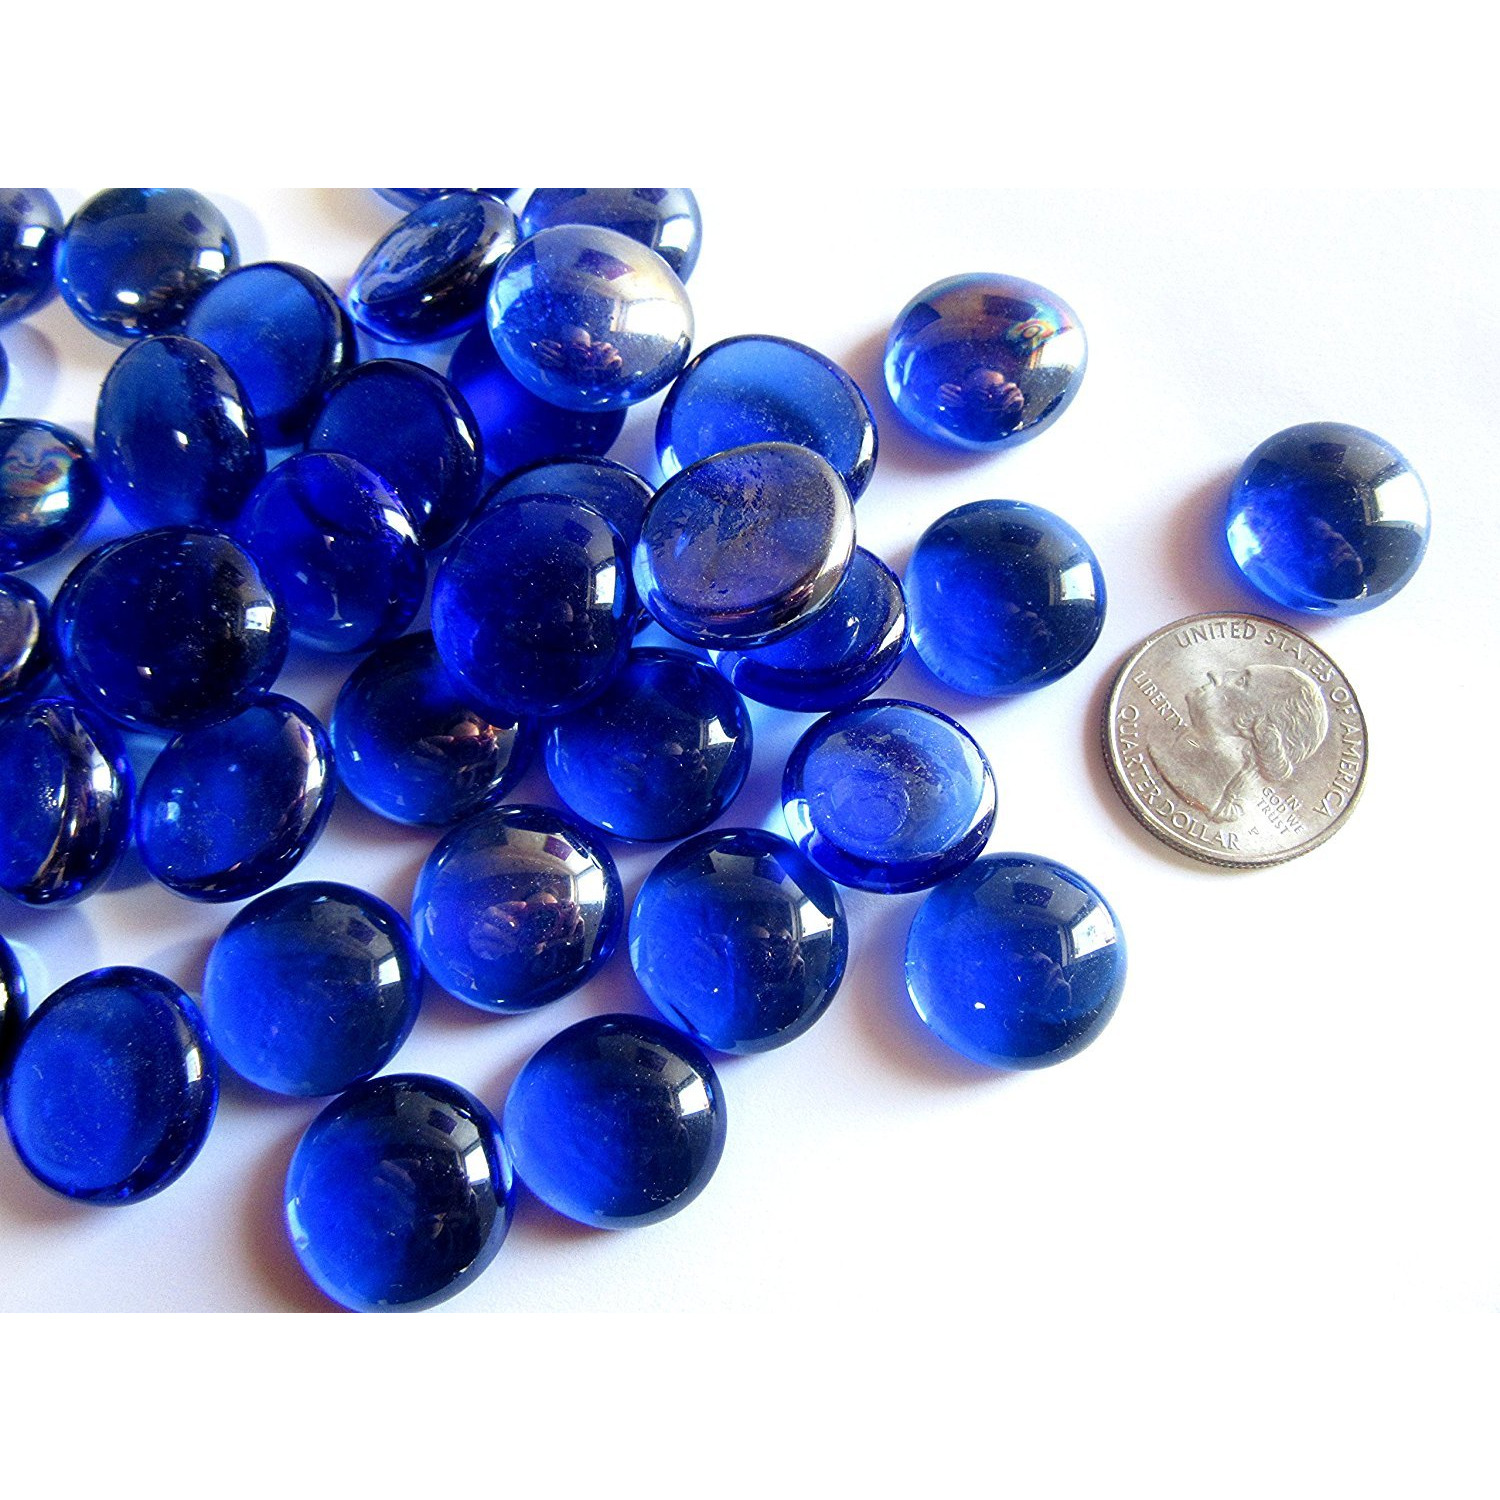 Blue Flat Marbles, Pebbles, Glass Gems for Vase Fillers, Party Table Scatter, Wedding, Decoration, Aquarium Decor, Crystal Rocks, or Crafts 50 PCS